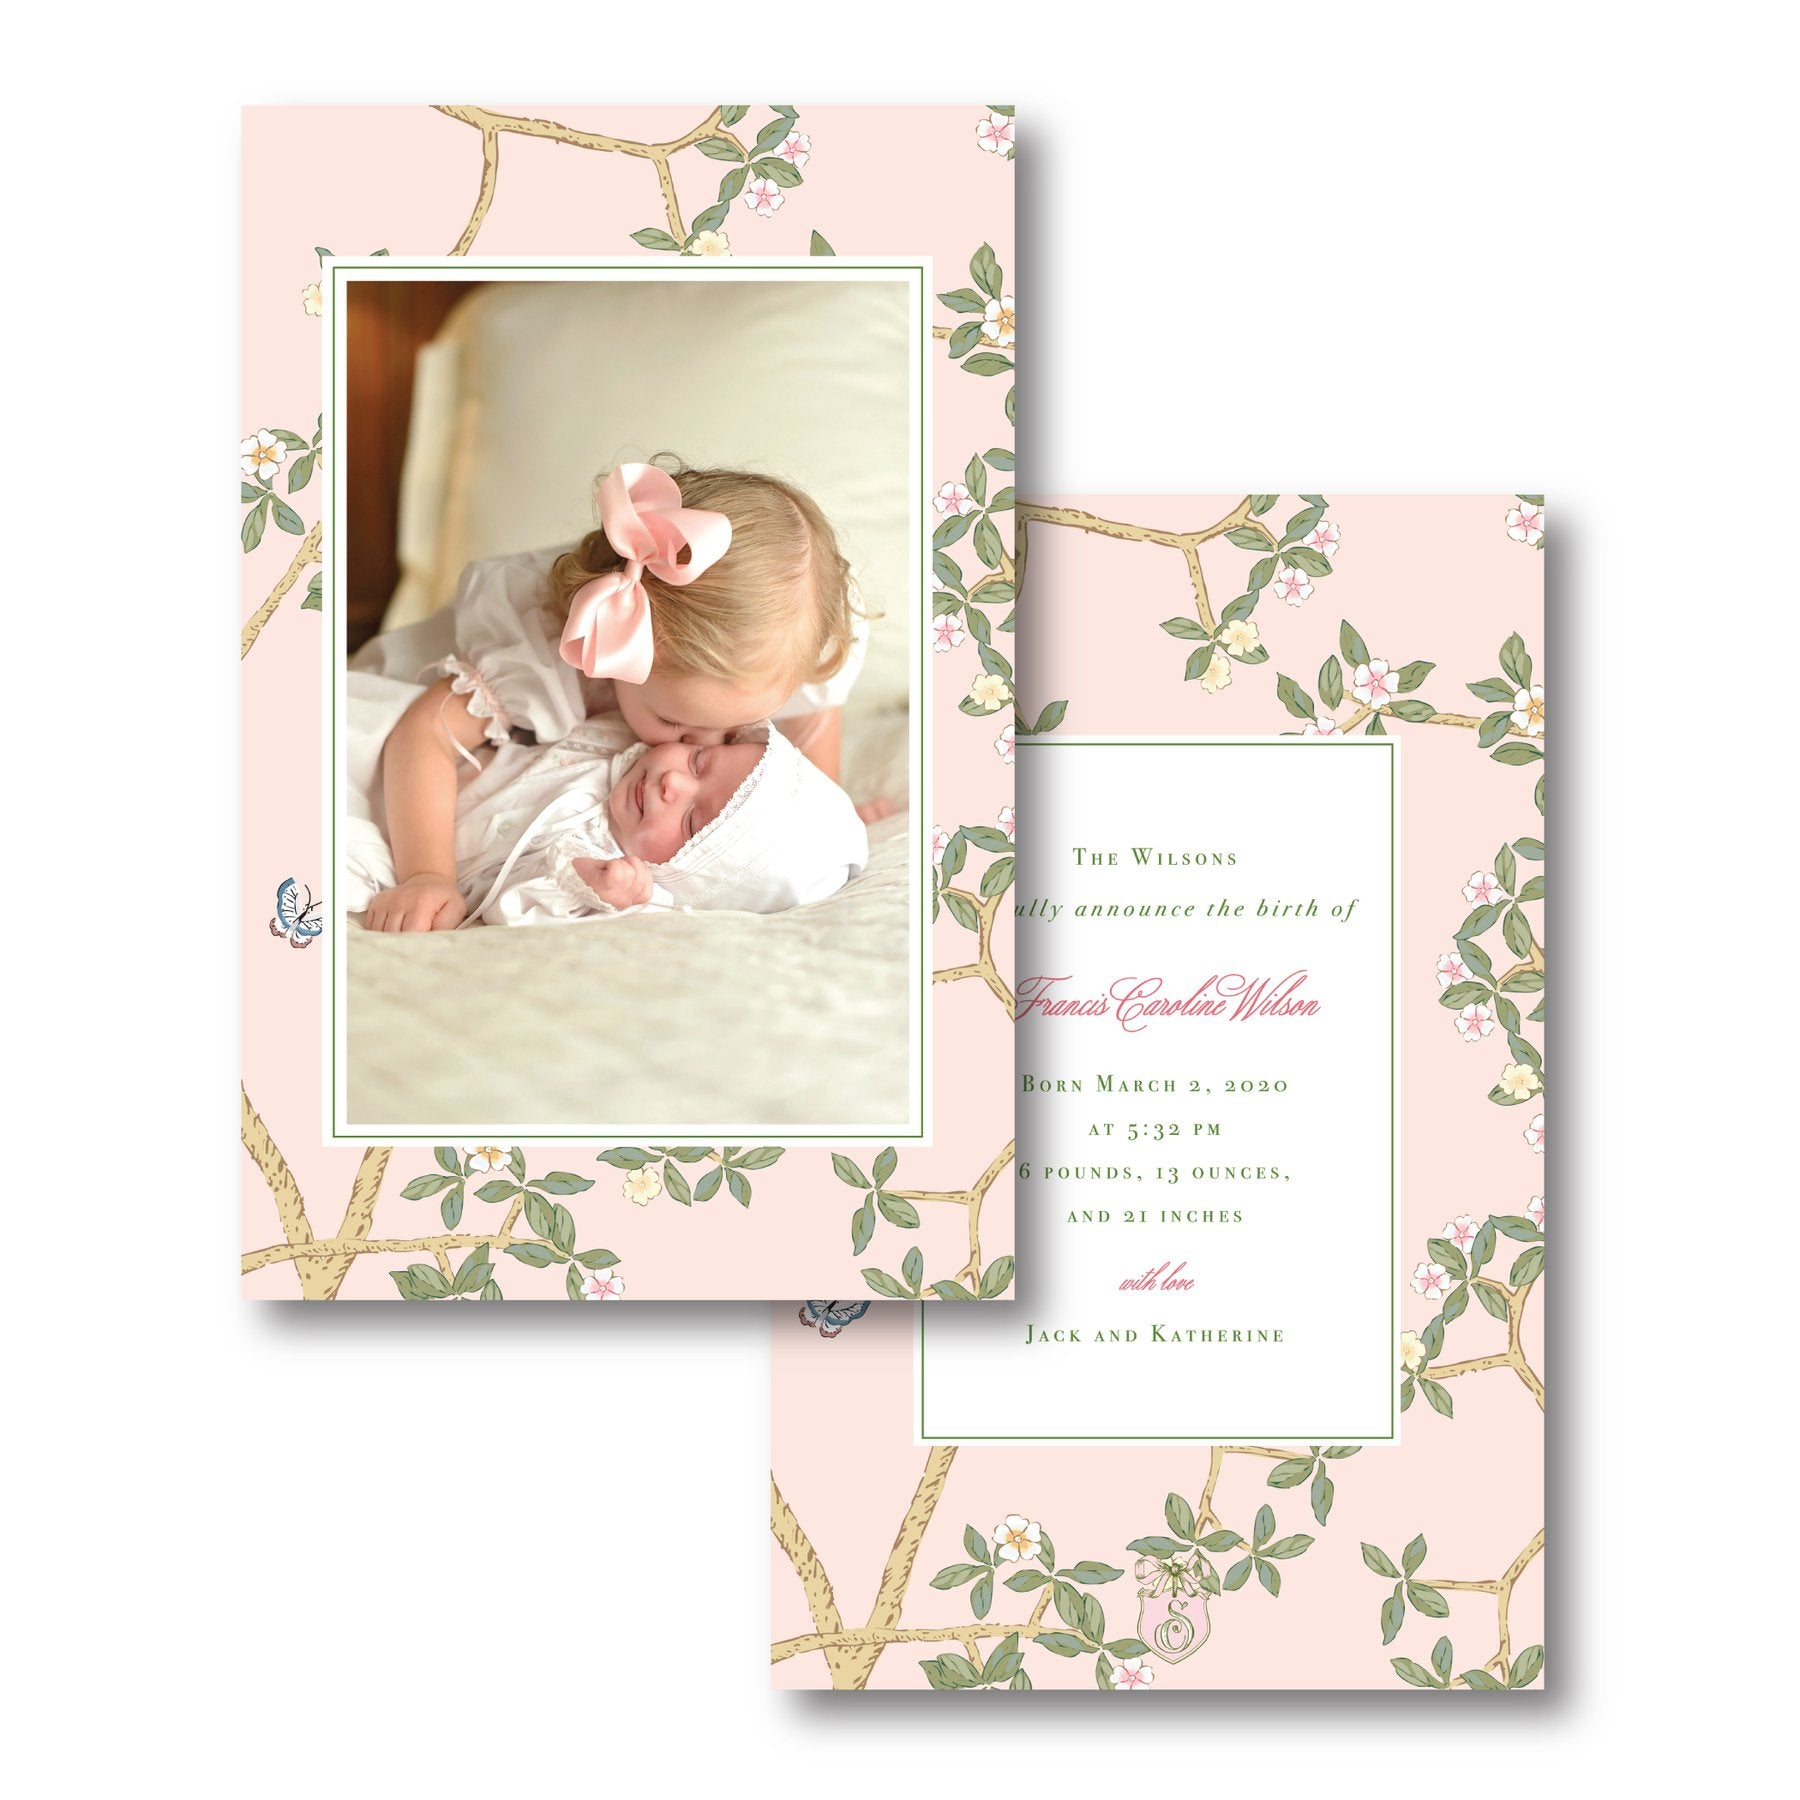 Custom made birth announcement card by Sweet Caroline Designs